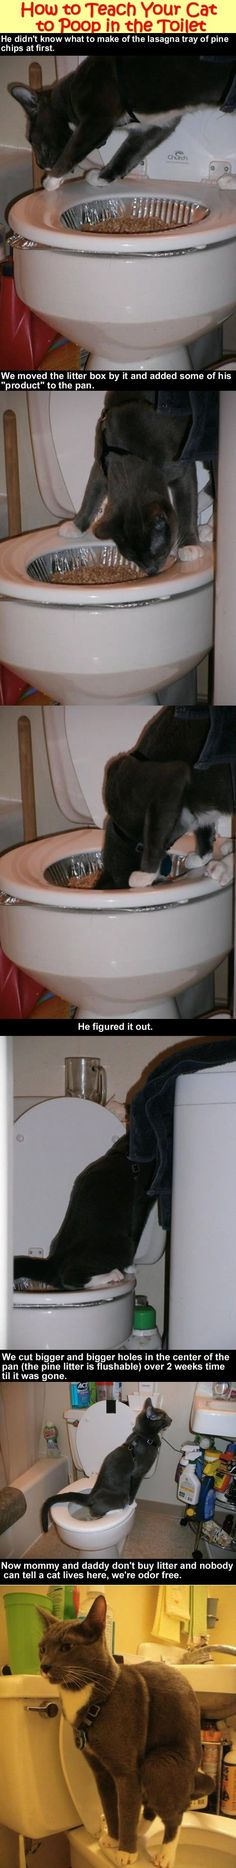 Lmao! Like I've previously stated, there will never be a cat in my house again, but this is funny.